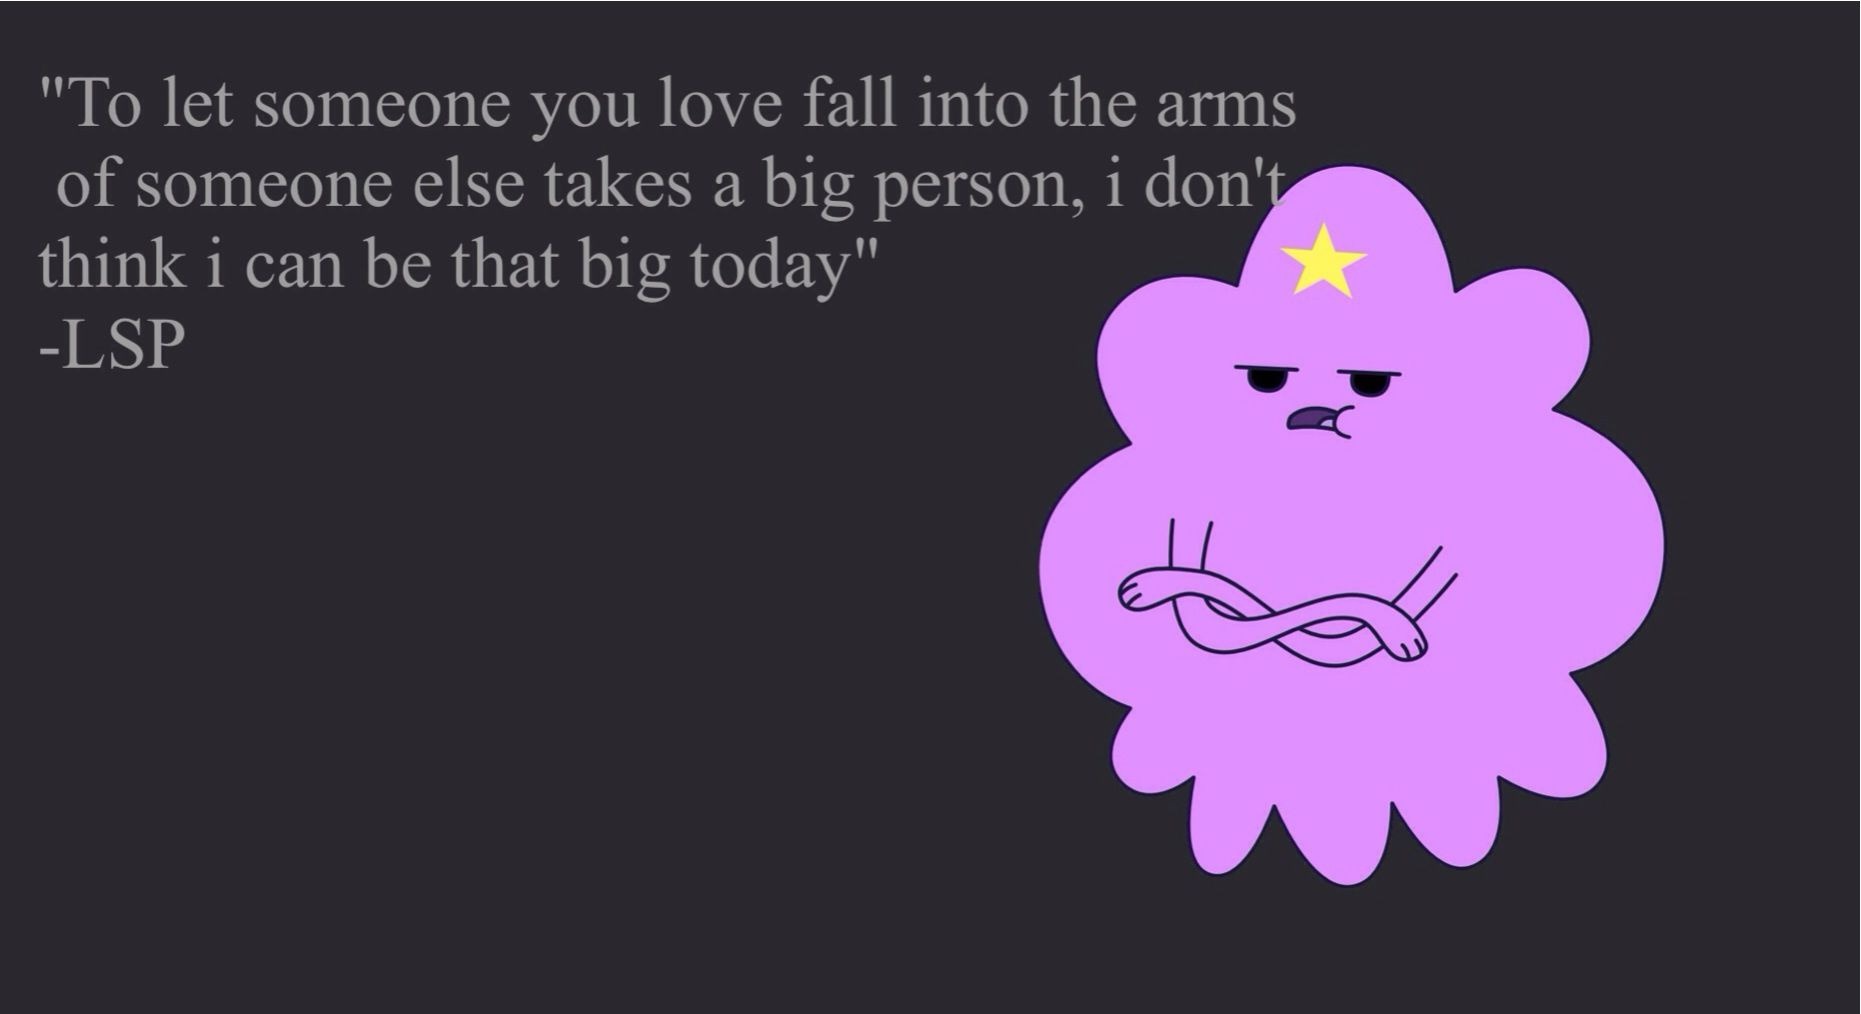 Adventure time LSP lumpy space princess love quote (With